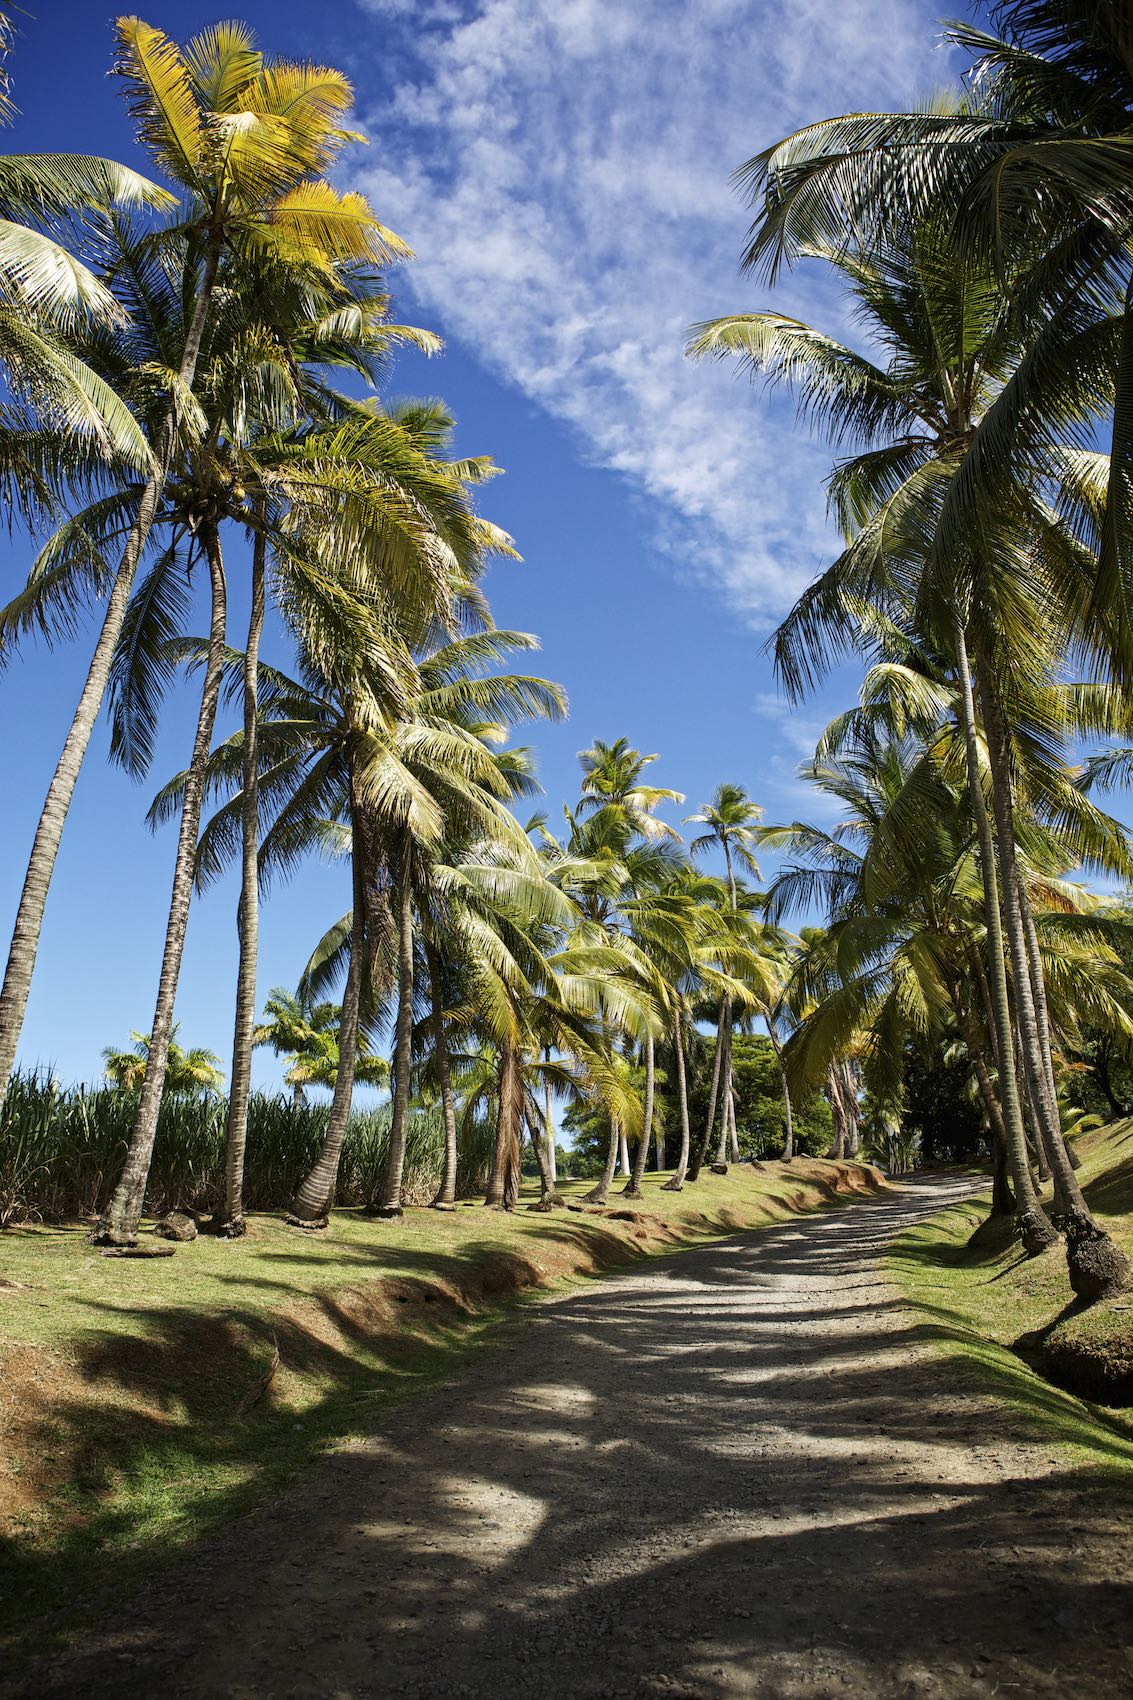 Jody Horton Photography - Row of palm trees in Martinique for Garden & Gun Rhum story.